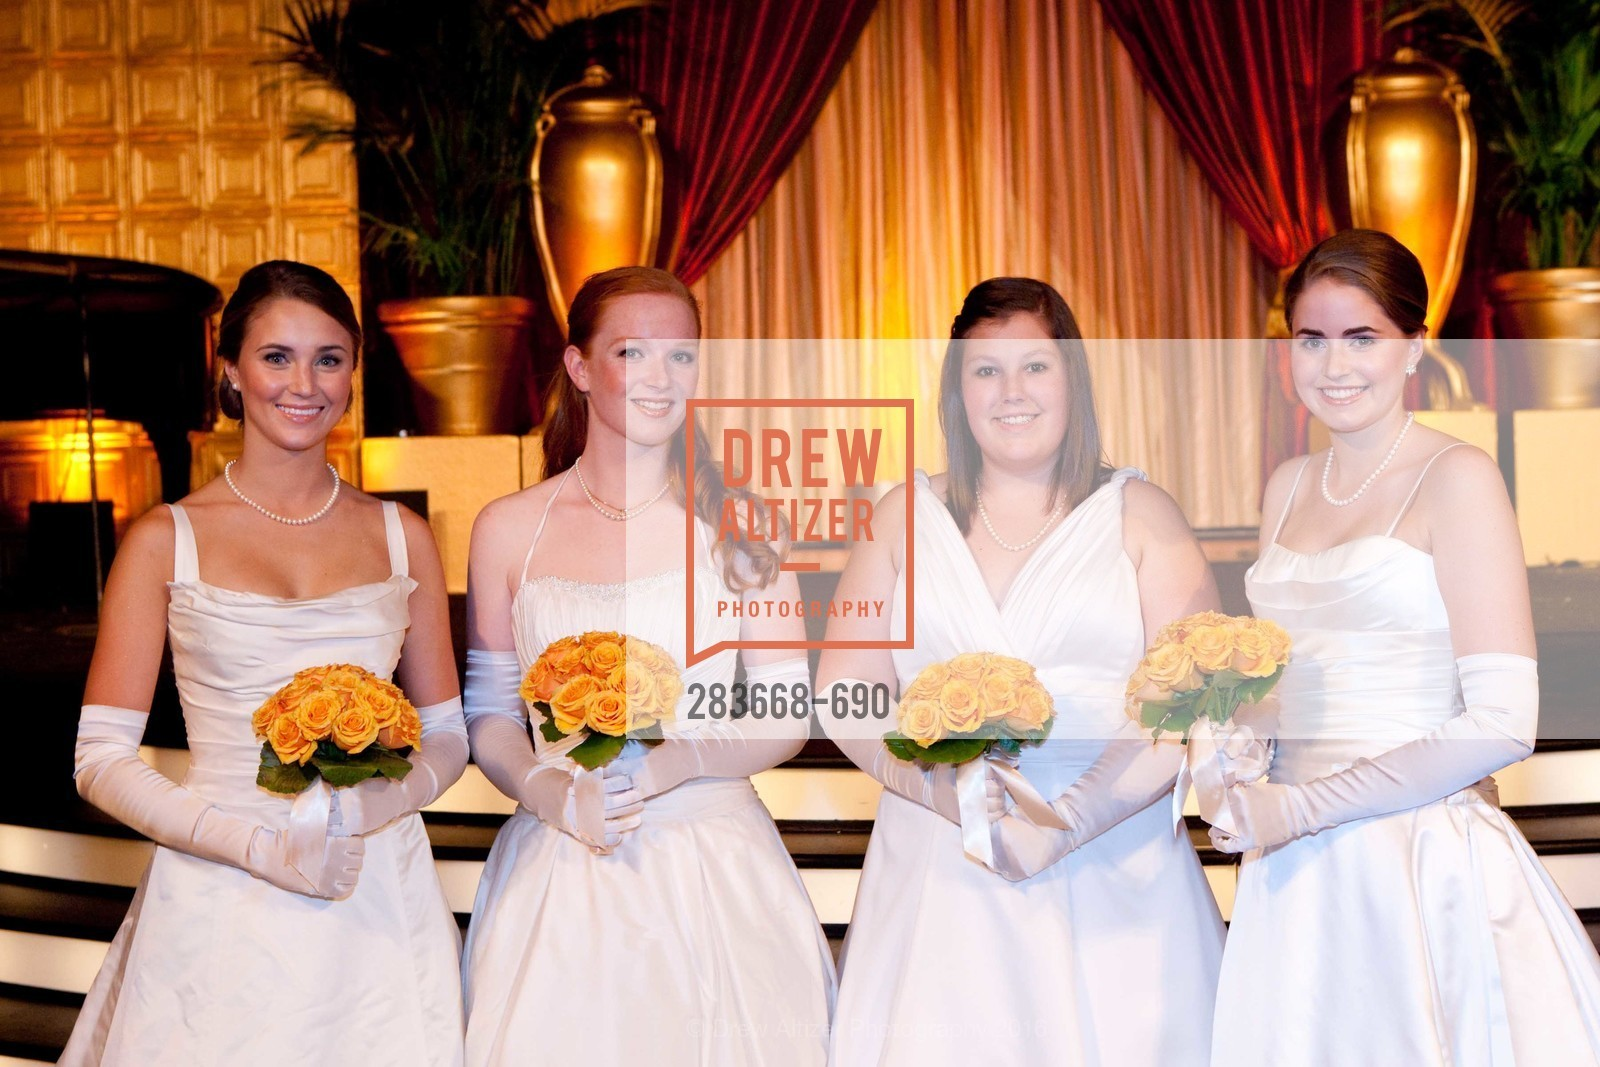 Anne Christine Lewis, Megan Fan Callaghan, Maison Cluck Haines, Sarah Elizabeth Bedford, 2009 Debutante Ball, Unknown, July 4th, 2008,Drew Altizer, Drew Altizer Photography, full-service agency, private events, San Francisco photographer, photographer california